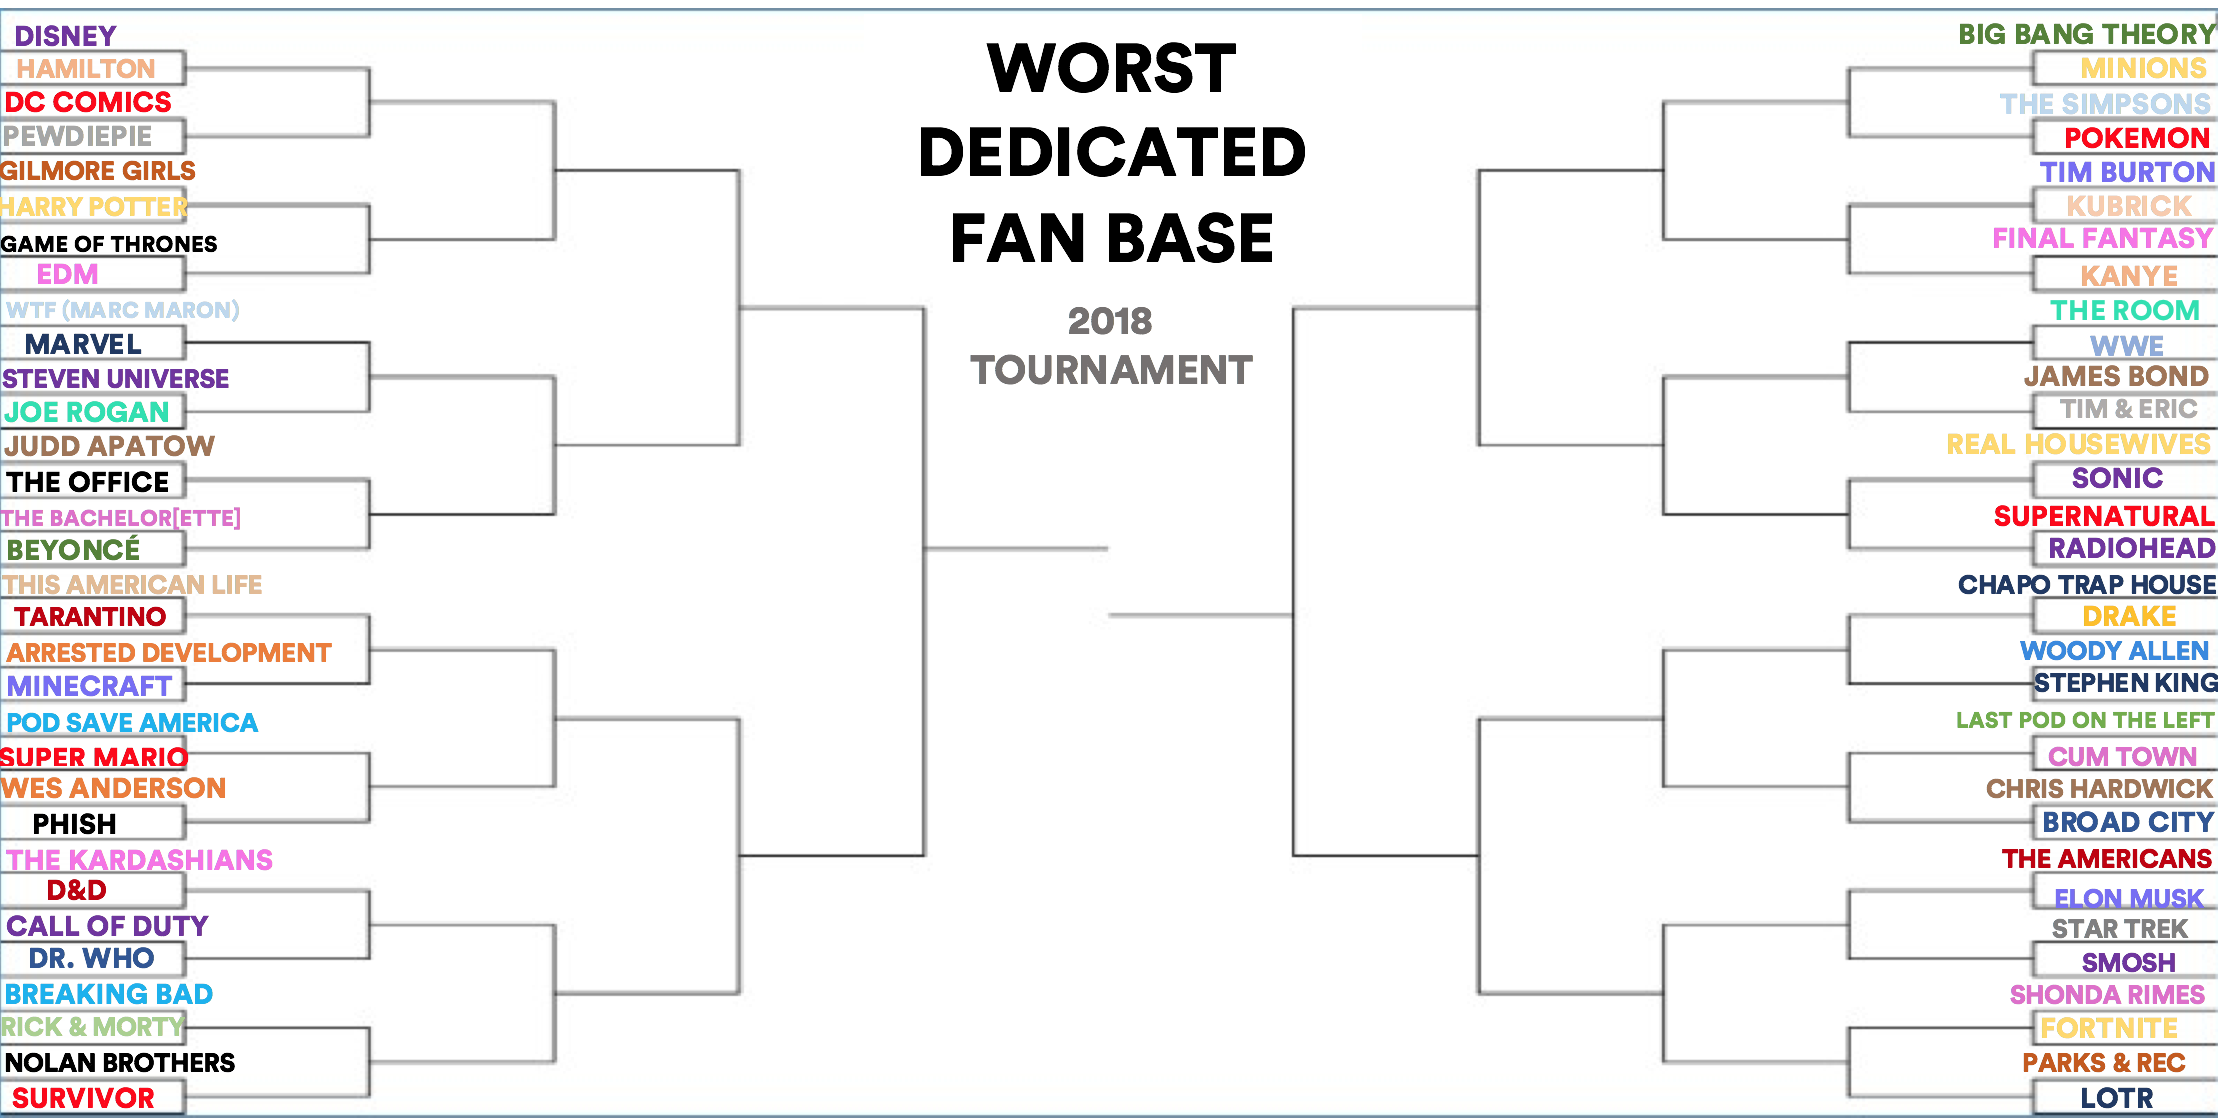 Worst Dedicated Fan Base Tournament 2018: Introduction And